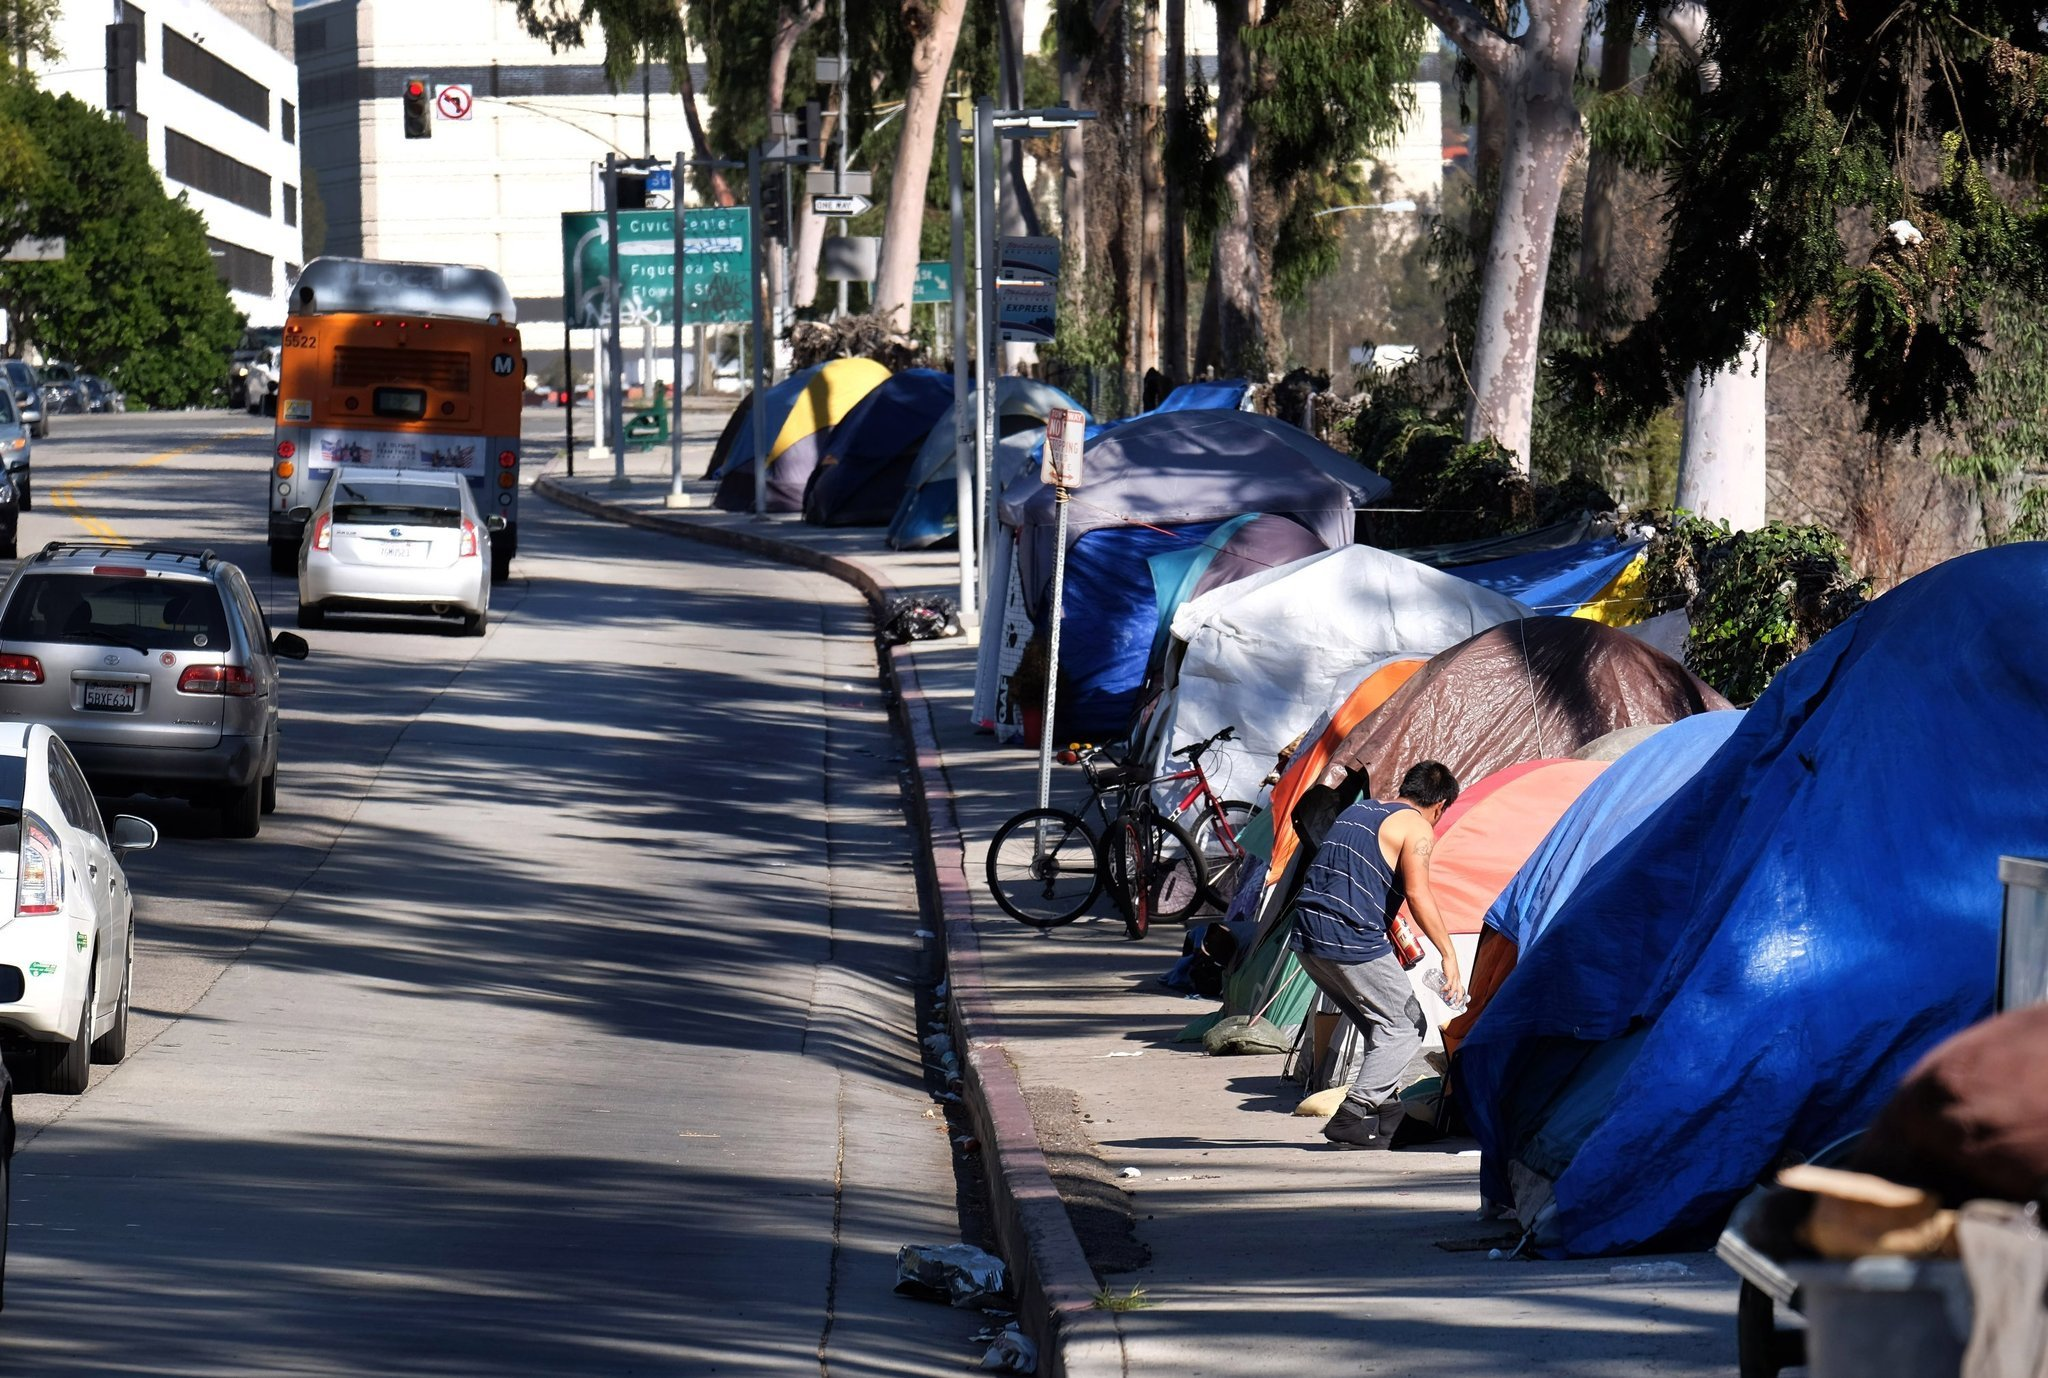 Report claims that Los Angeles needs tens of thousands of rentals for homeless